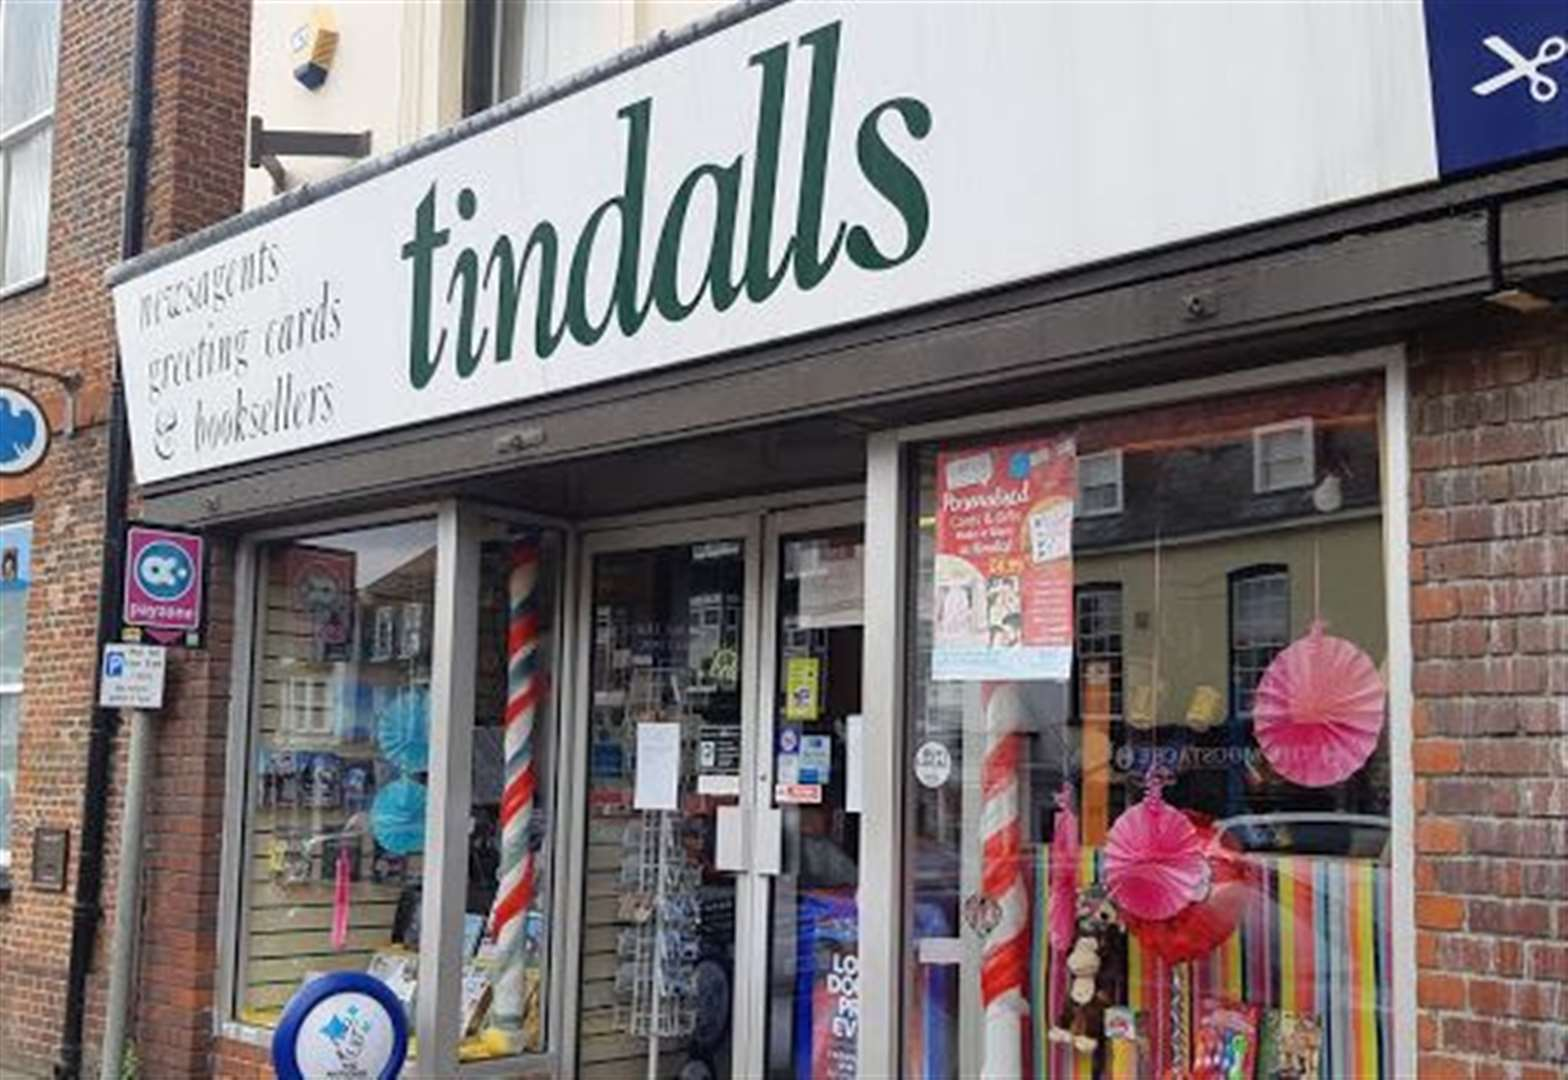 Double blow for Newmarket as Tindalls Newsagents and Claire's Accessories close